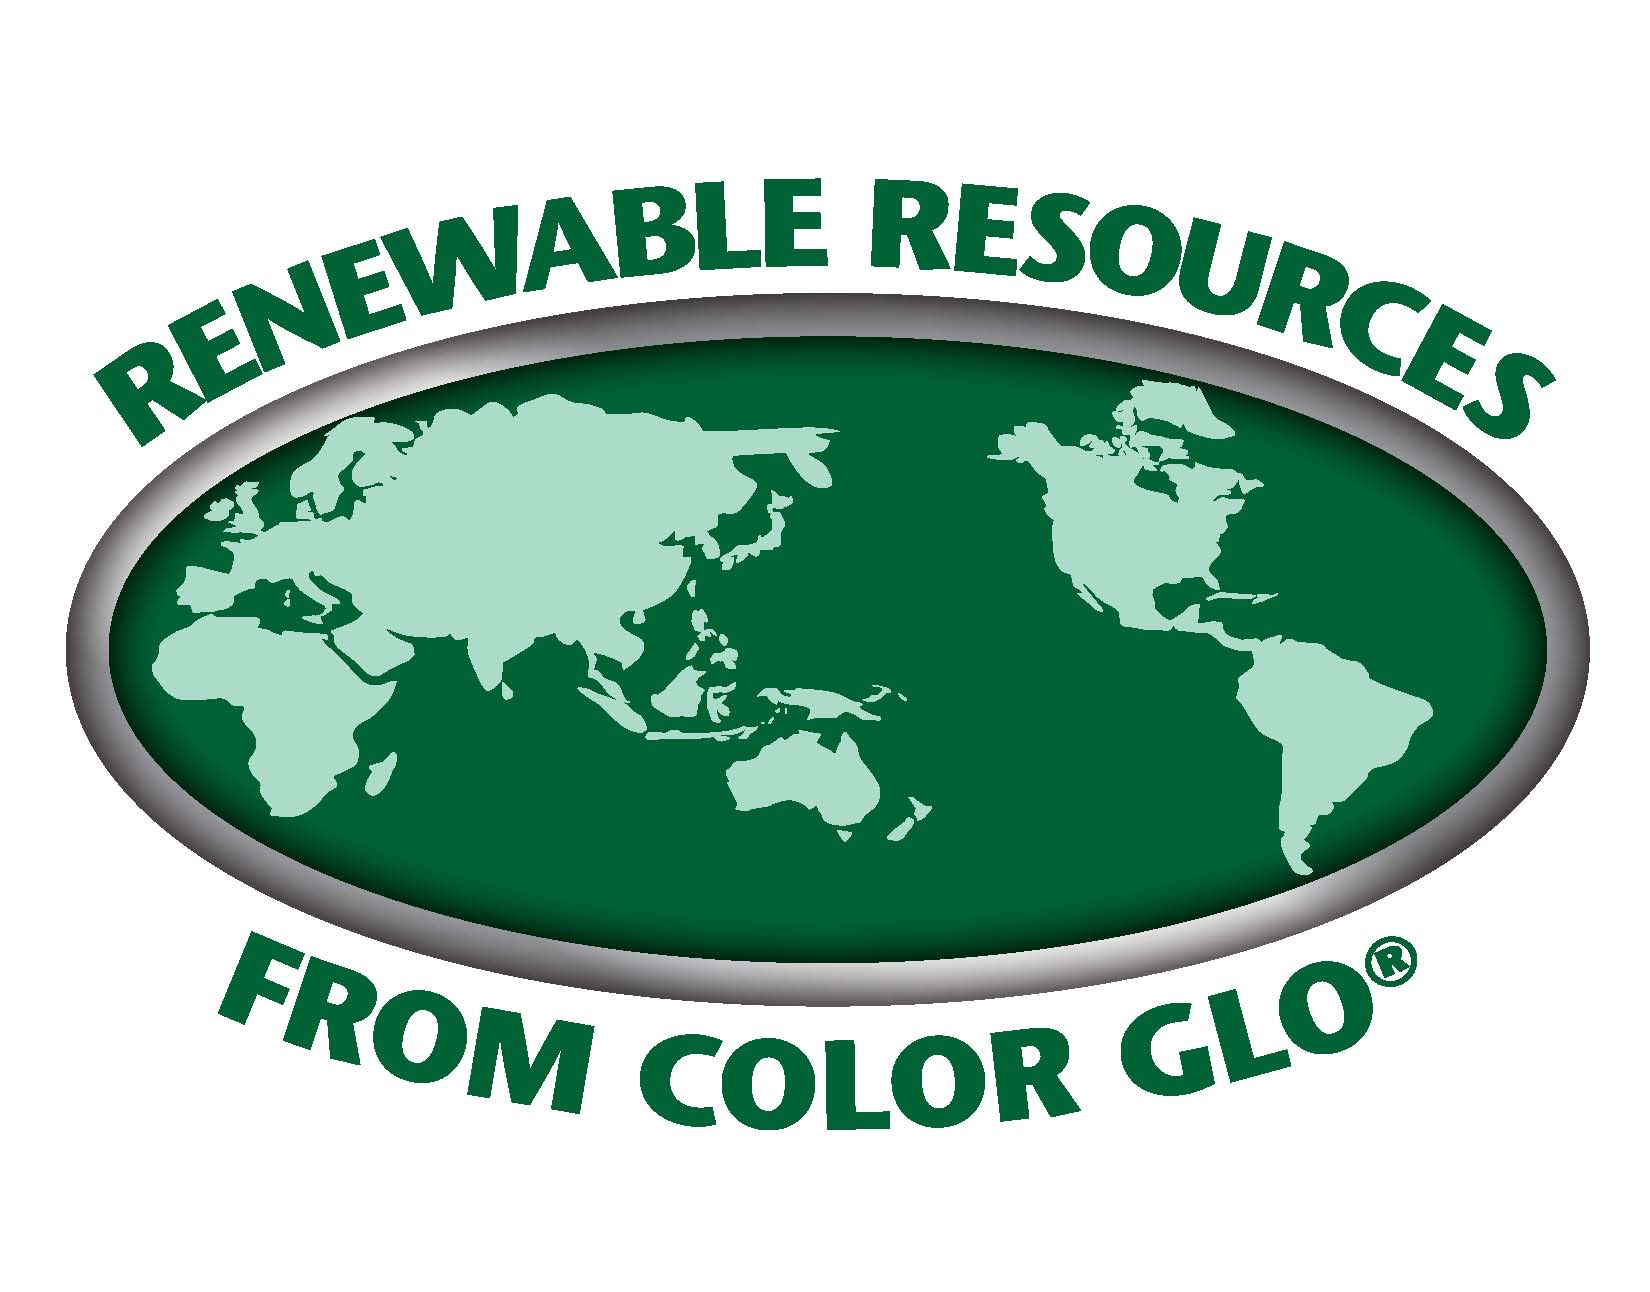 Renewable Resources from Color Glo.